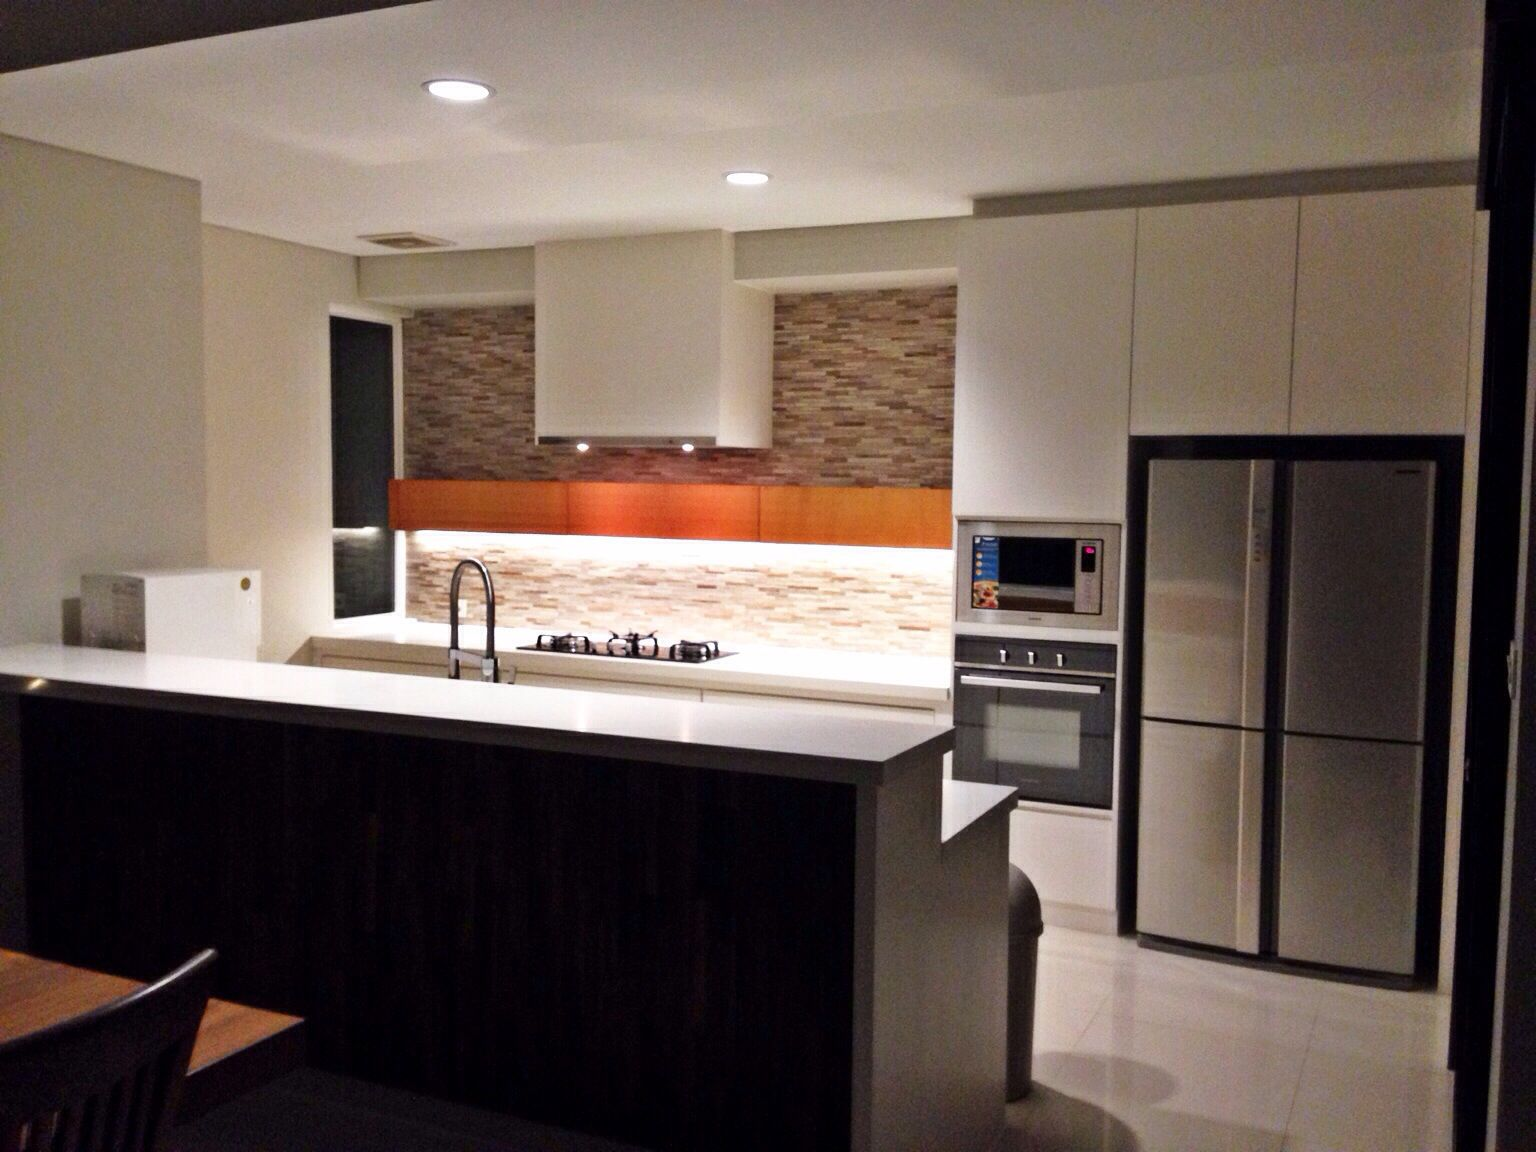 kitchen design for Denis' house 2014 by j+a